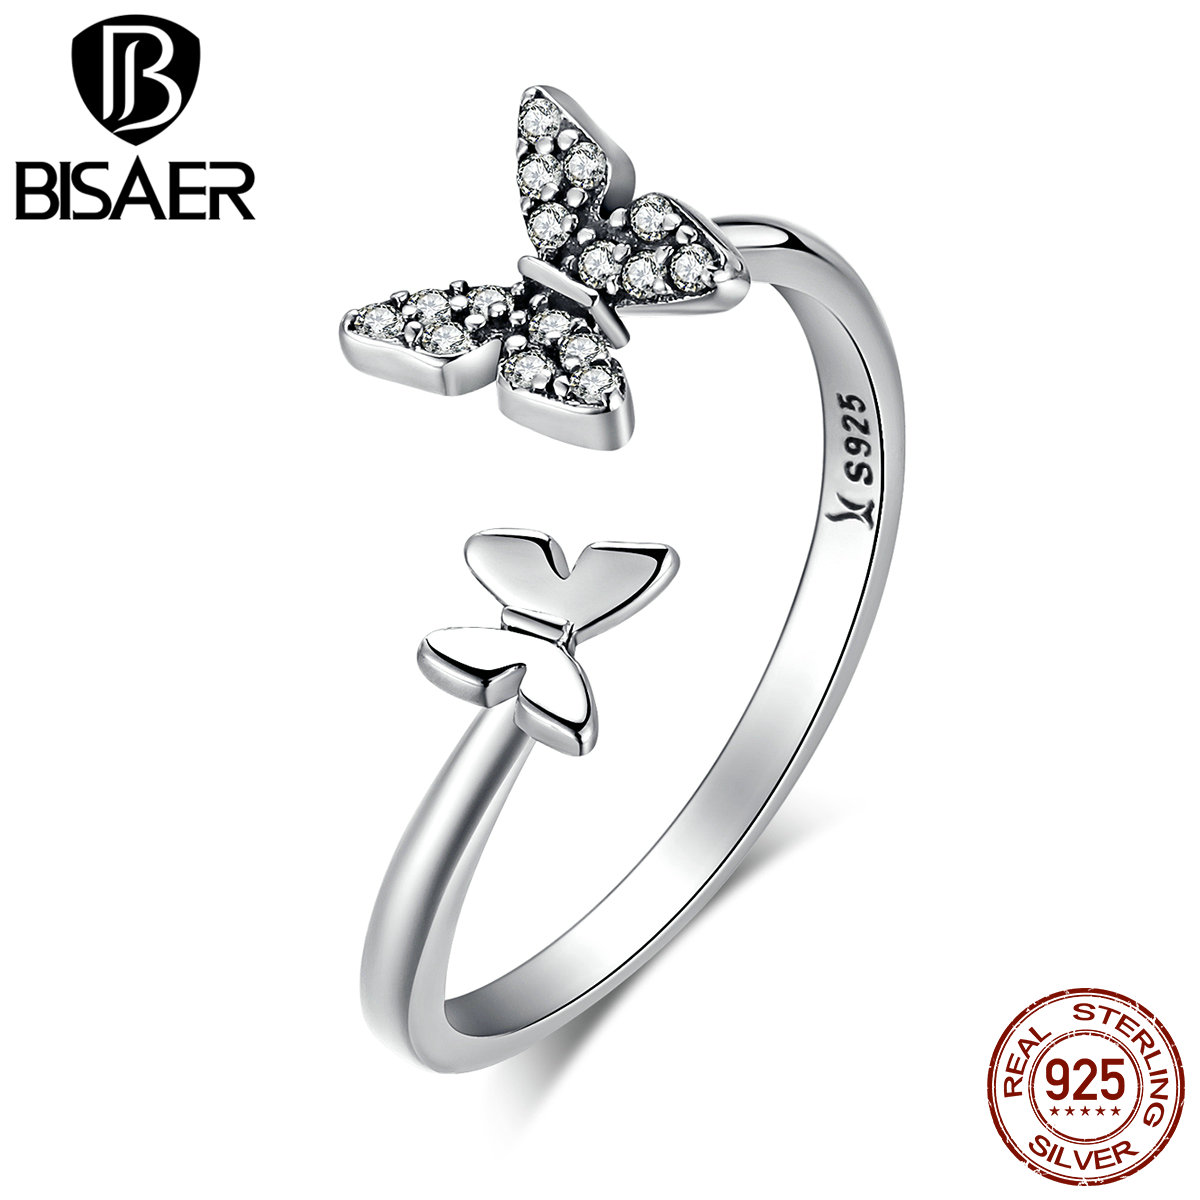 BISAER Hot Sale 925 Sterling Silver Clear CZ Dancing Butterfly Open Finger Rings for Women Fashion Sterling Silver Jewelry Gift